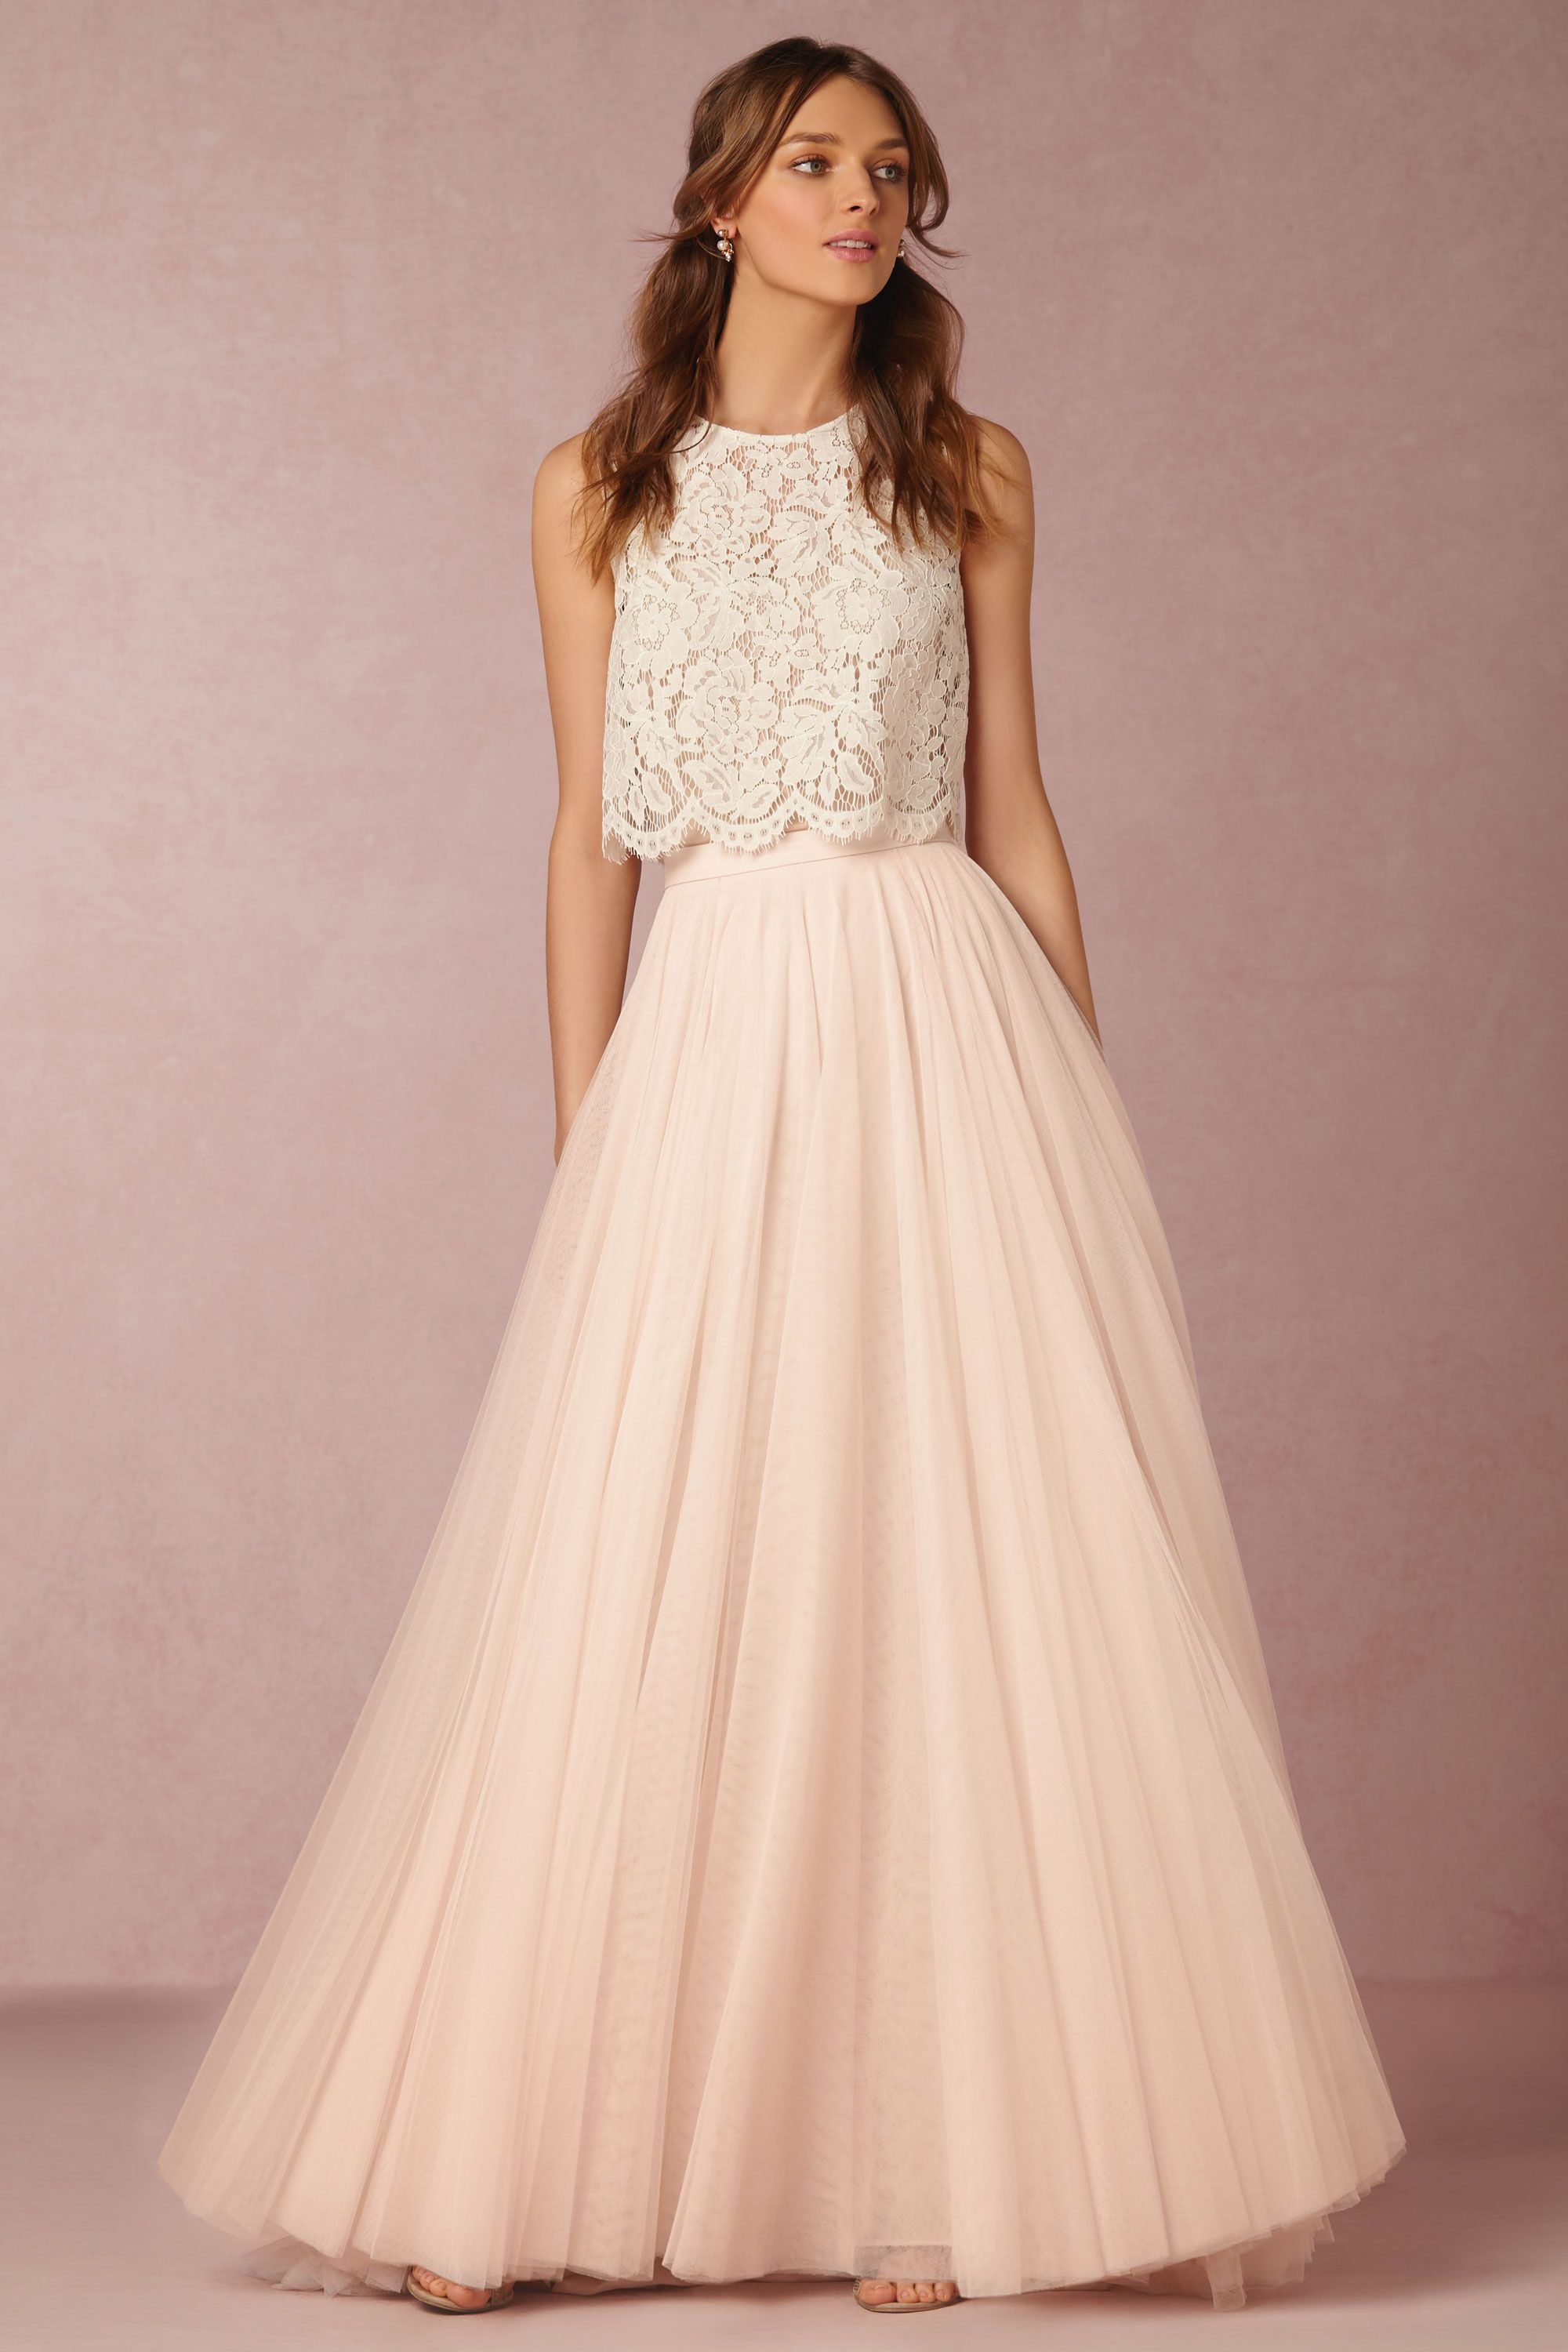 Best beach wedding dresses for guests  BHLDN Cleo Top in Bridesmaids Bridesmaid Separates  BHLDN  Classic